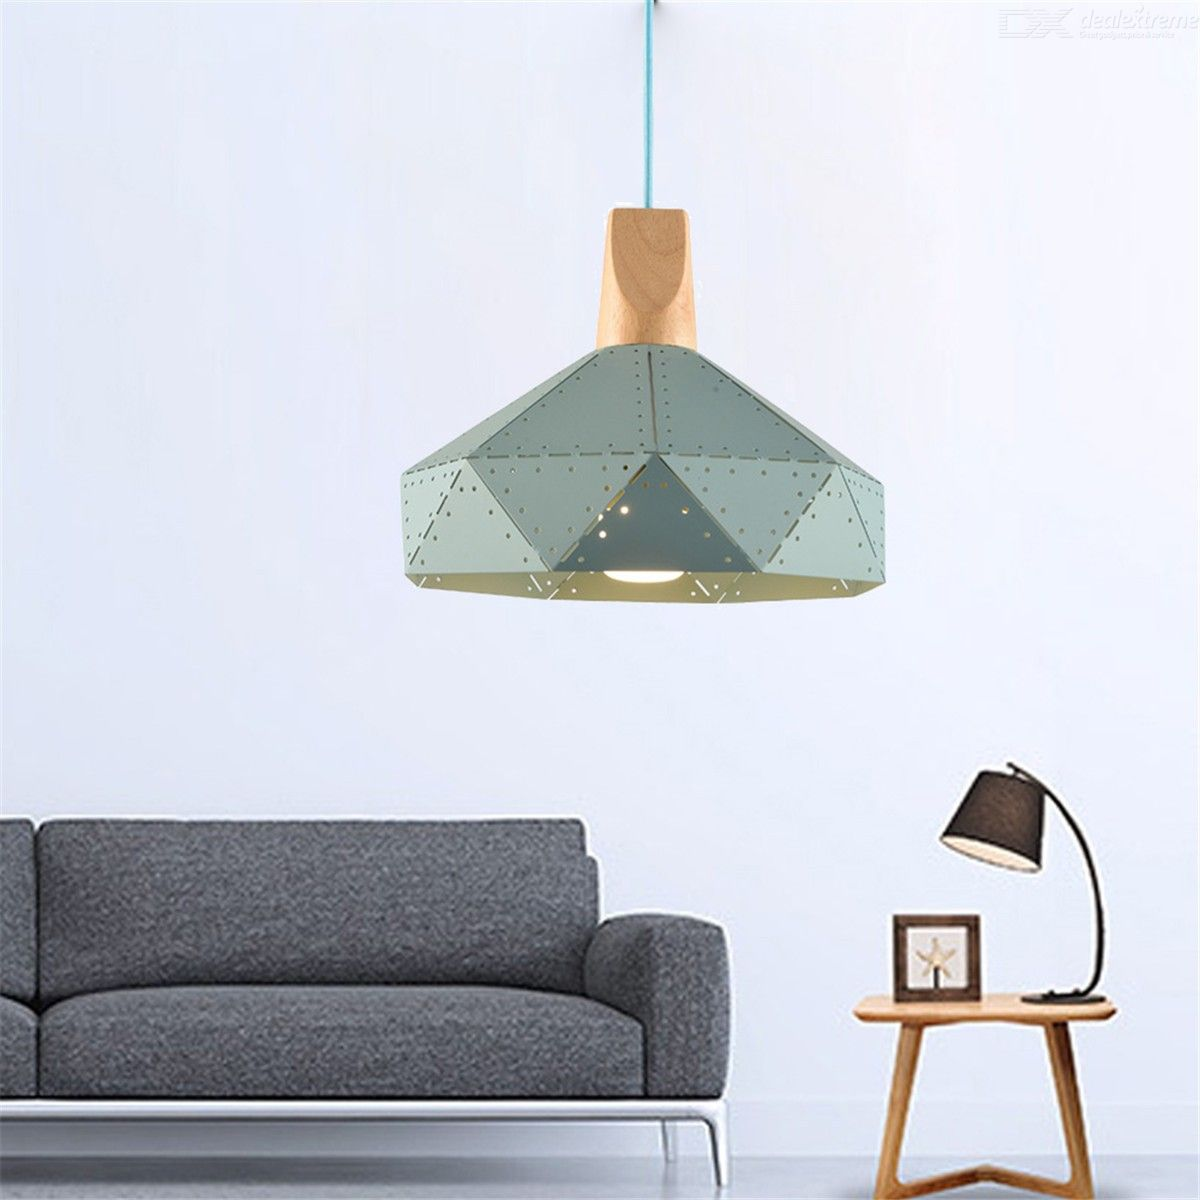 Y8 Decoration De Maison Ywxlight Modern Creative Pendant Lamp Home Hotel Cafe Decoration Lighting Chandelier